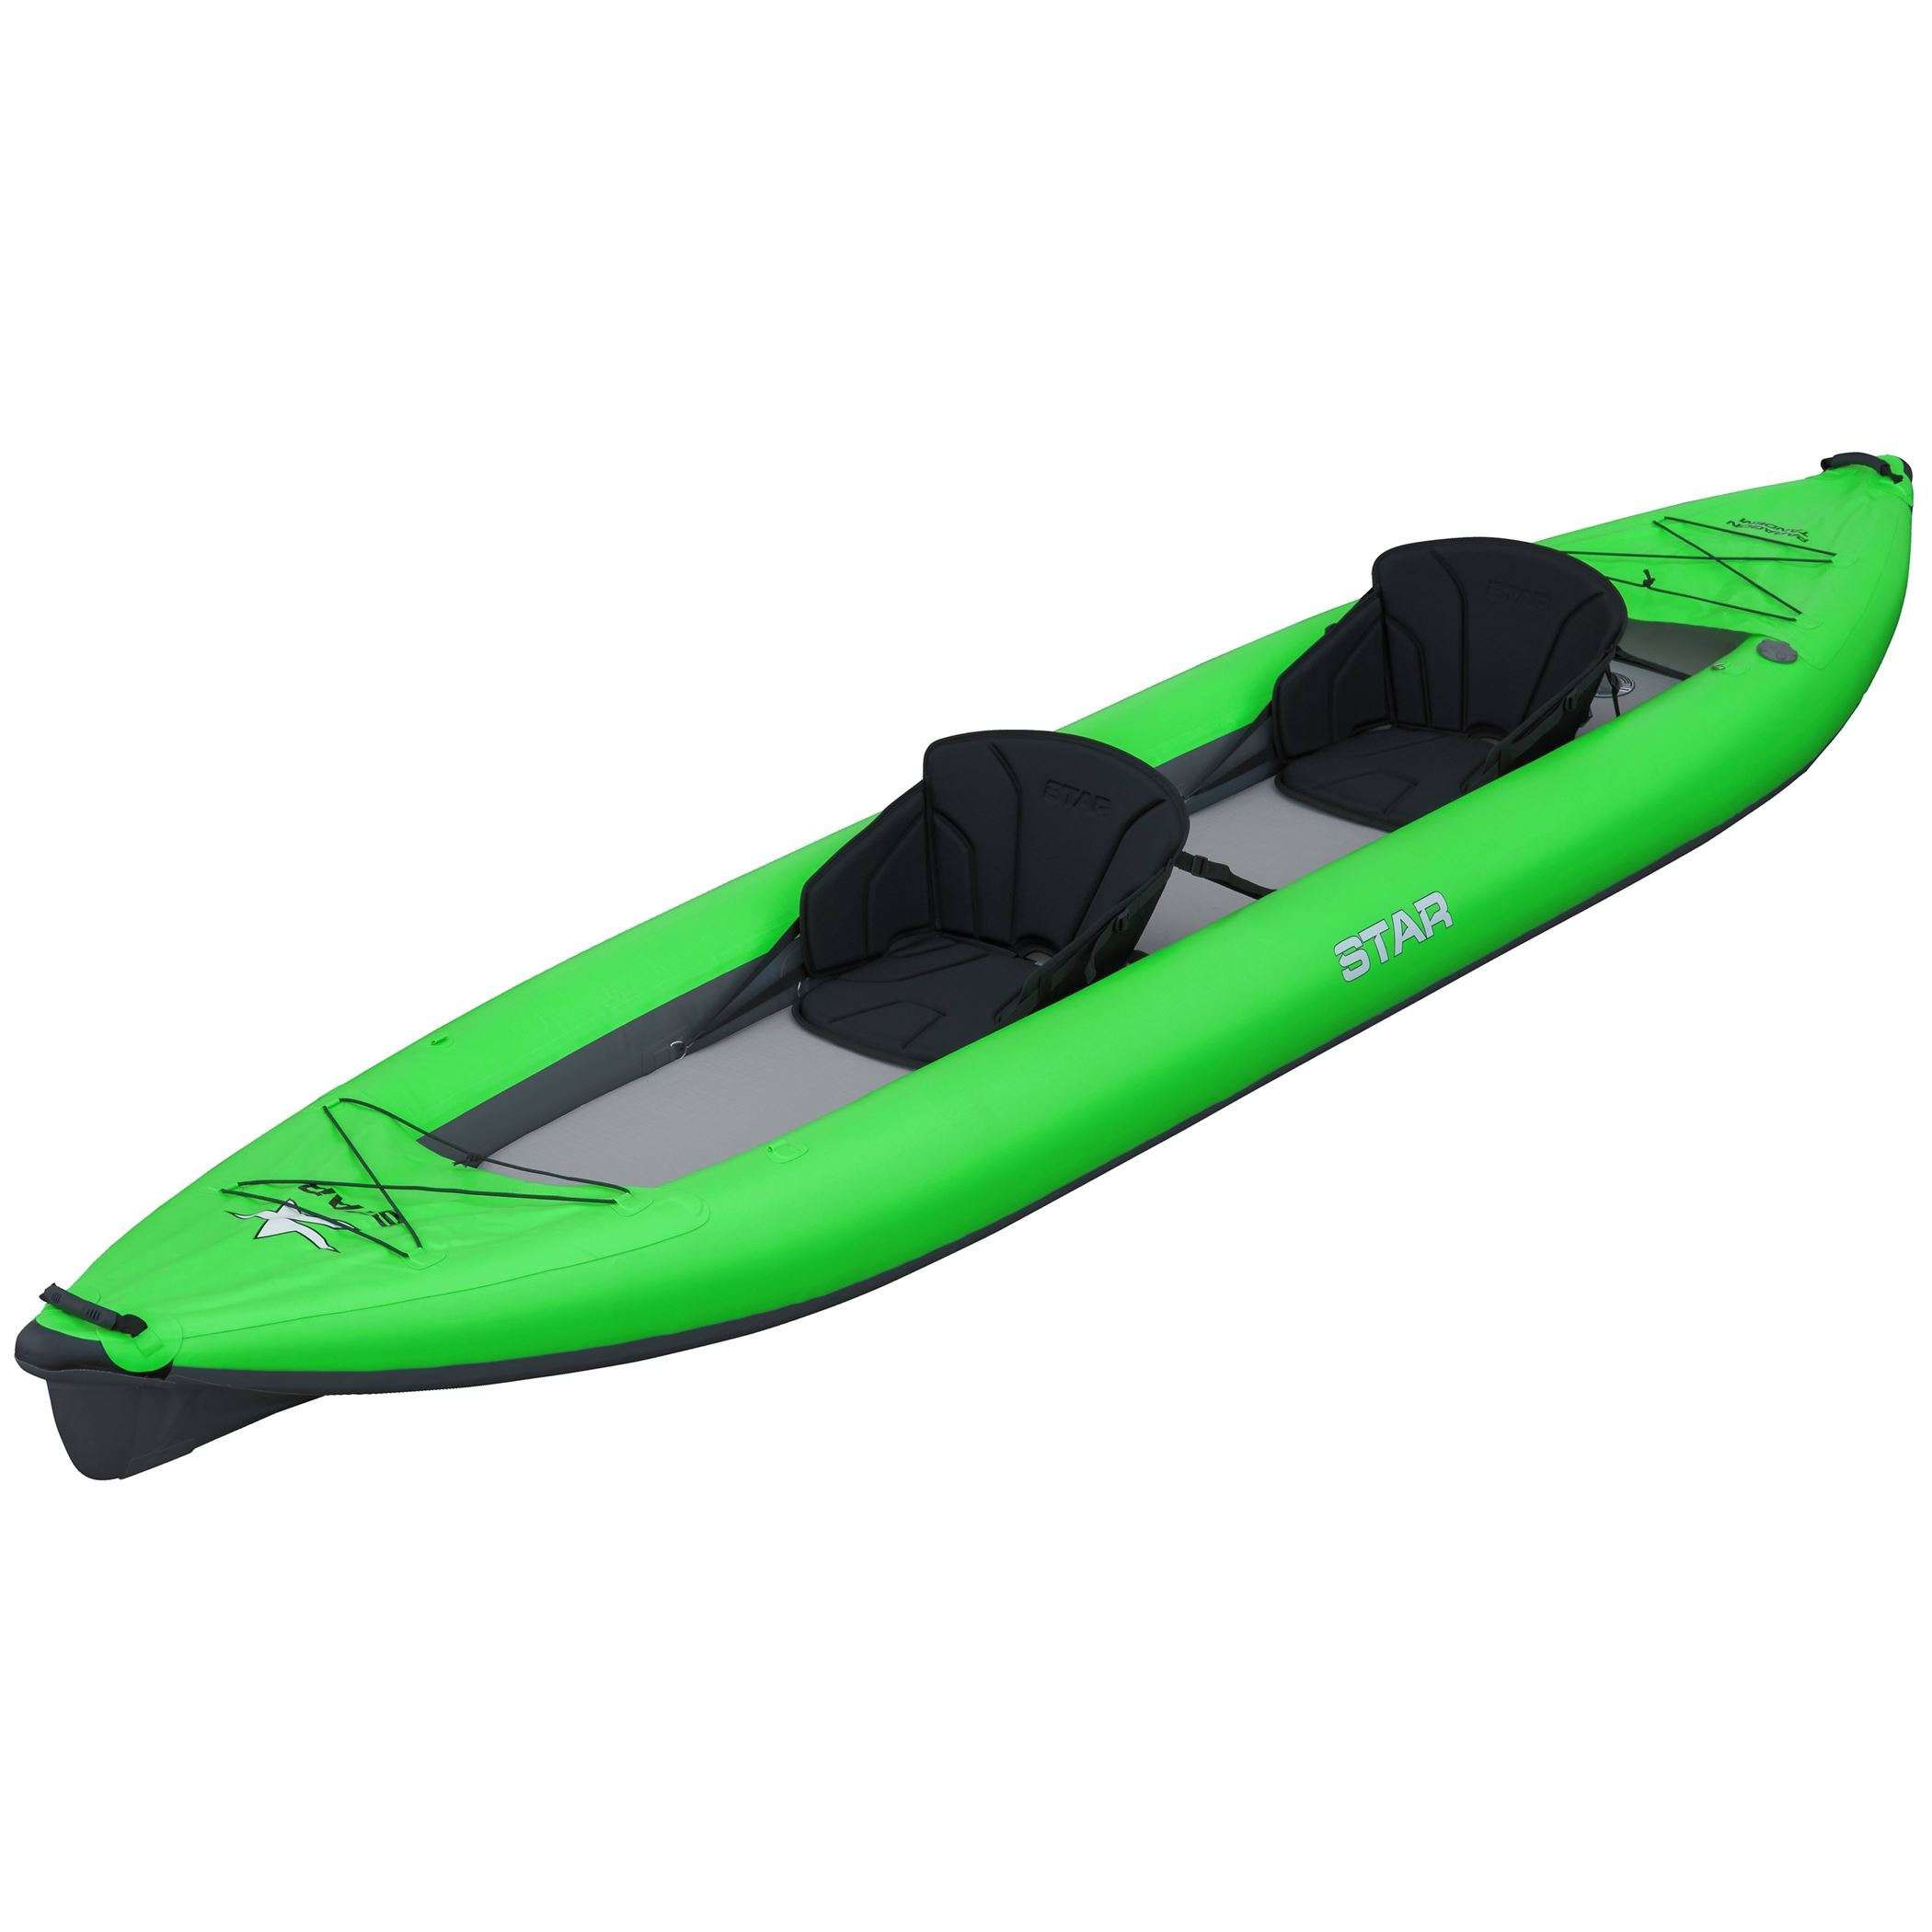 STAR Paragon Tandem Inflatable Kayak